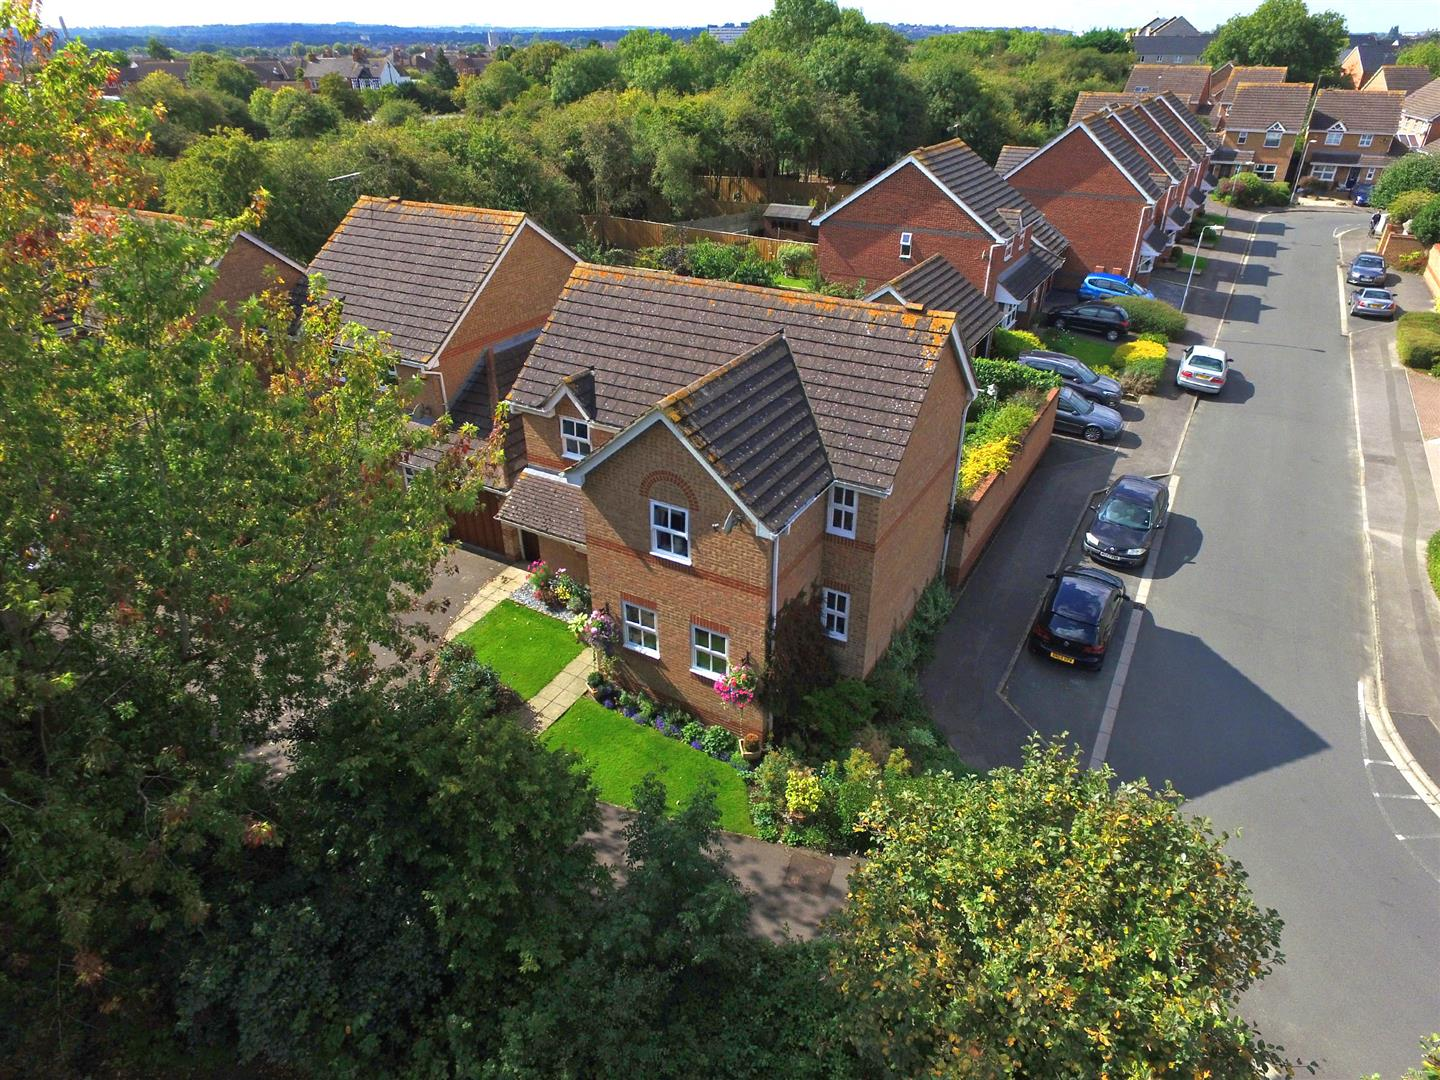 4 Bedrooms Detached House for sale in Hatherall Close, Stratton St. Margaret